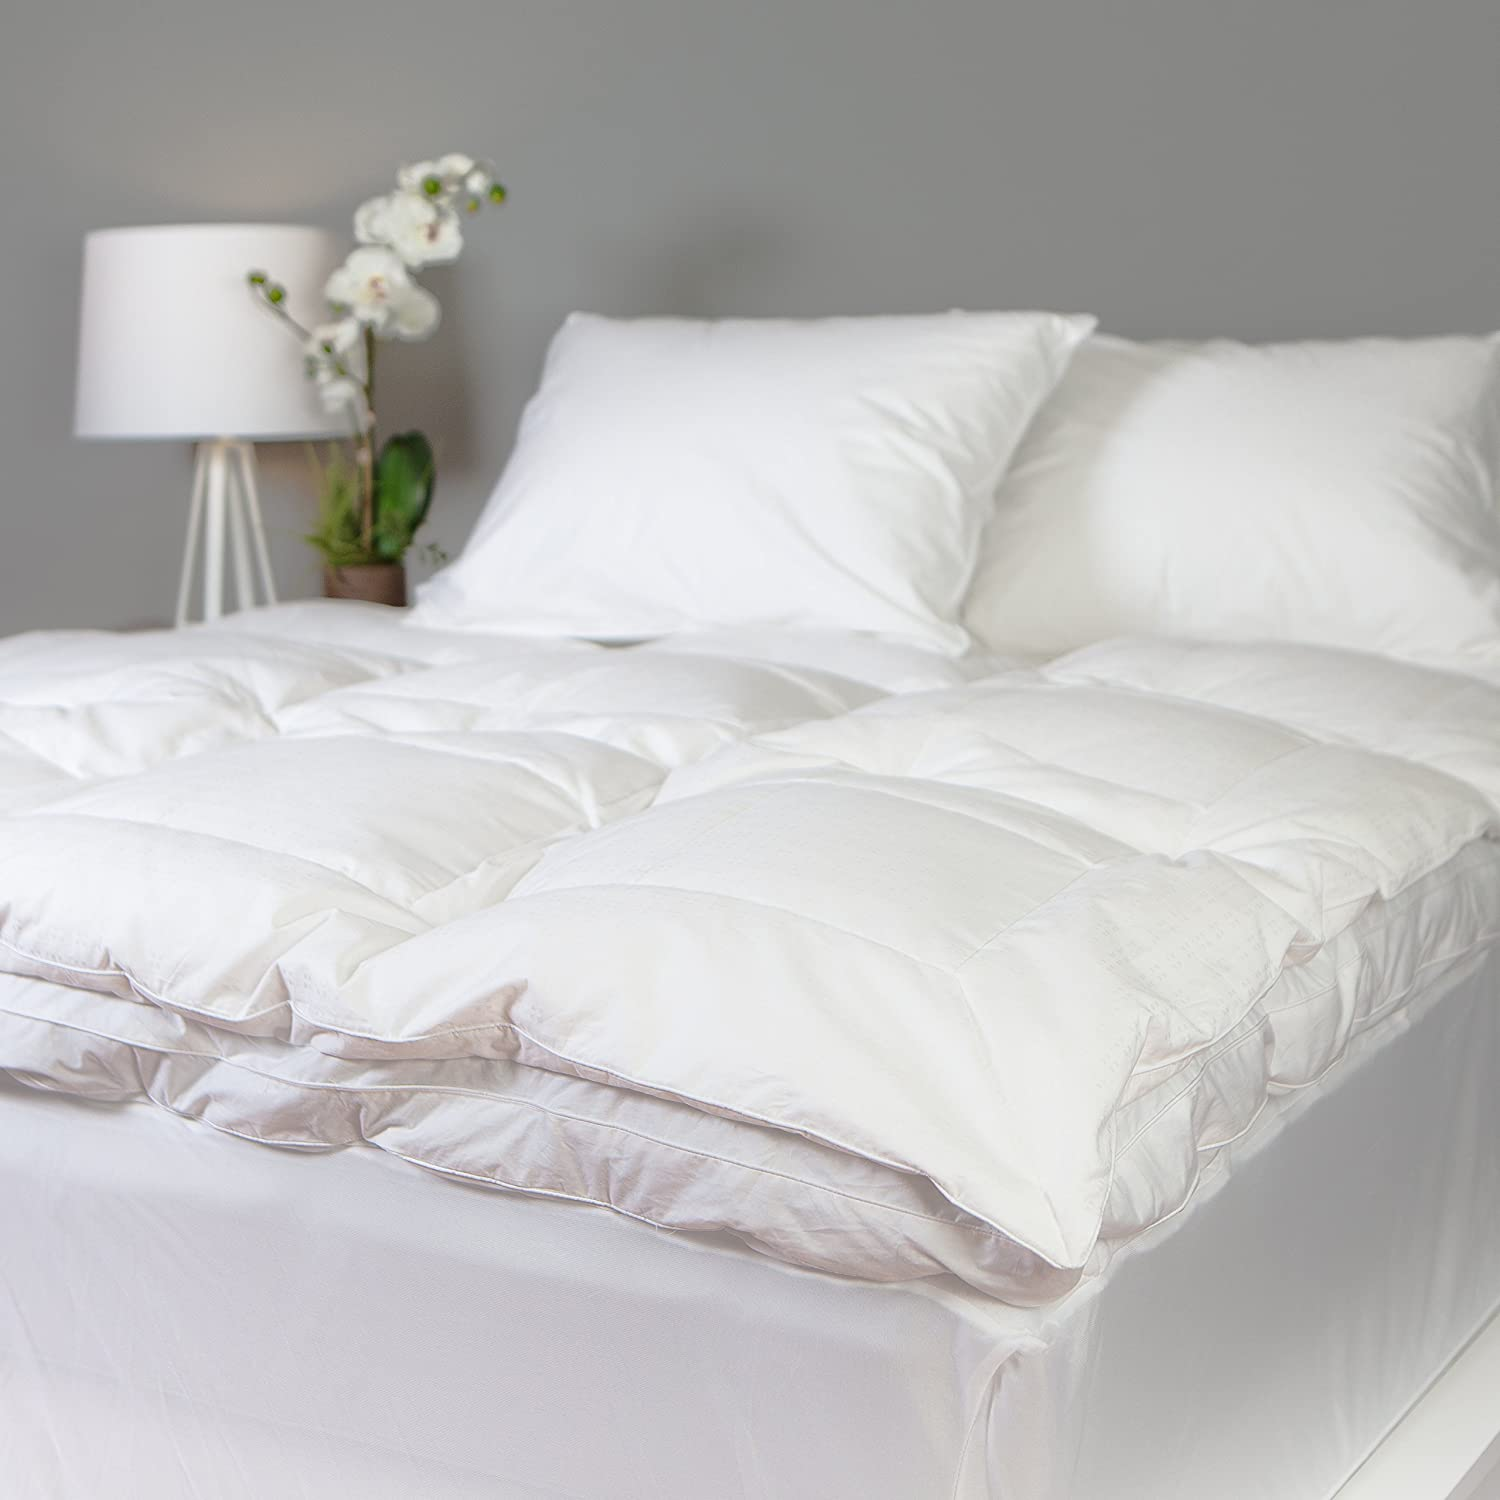 Allied Essentials Luxe 100% Cotton White Down Feather Mattress Bed Topper, White, Twin Twin Allied Home FB000207